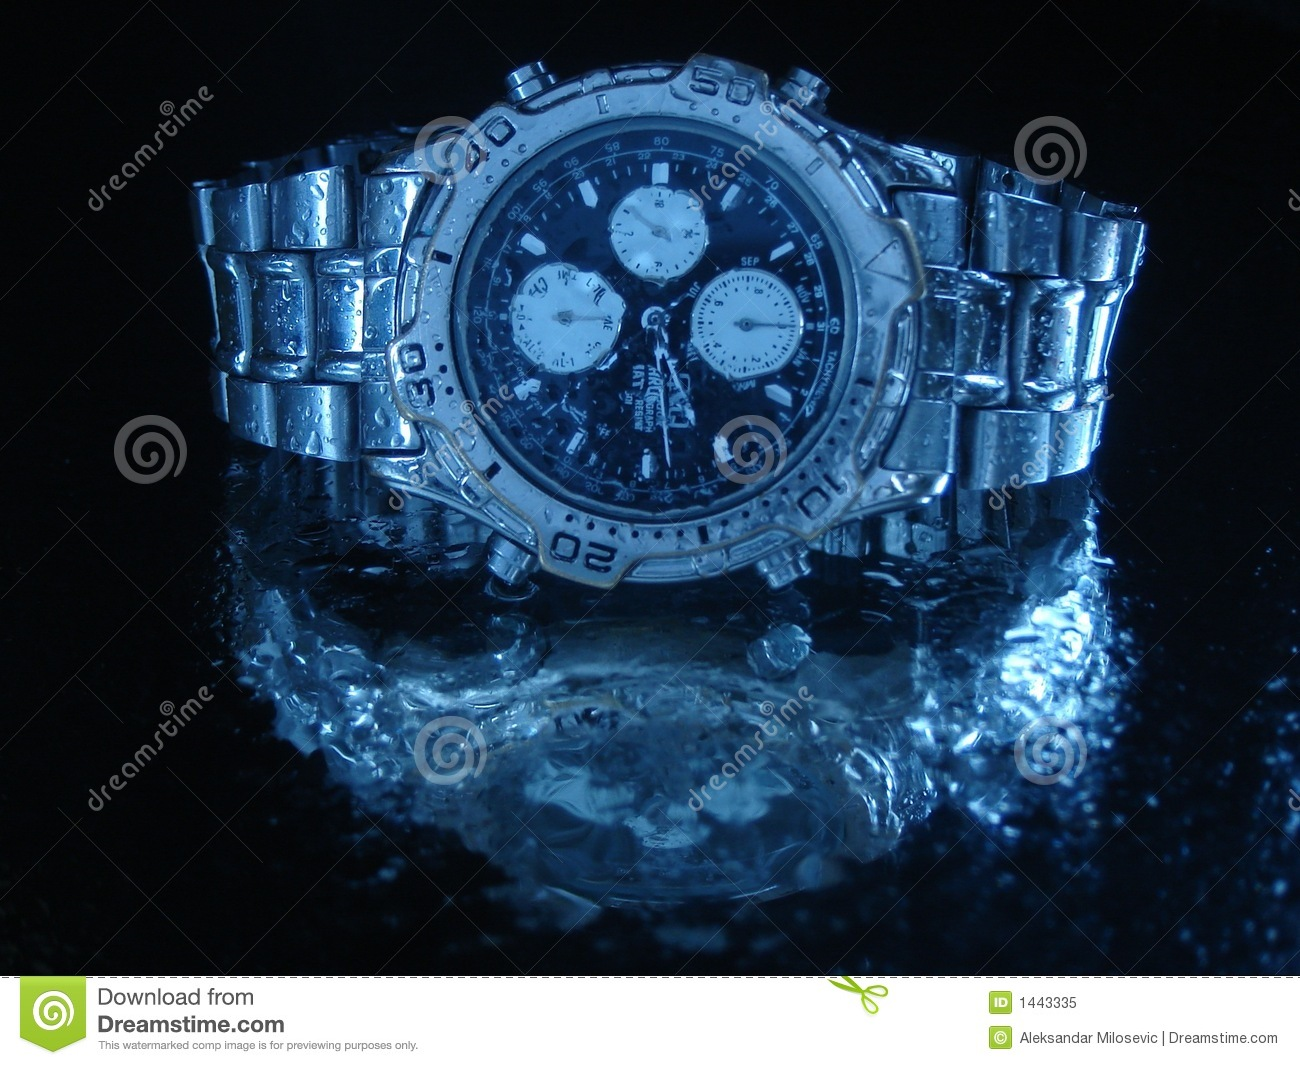 Water resistant watch stock image. Image of clock, diving ...